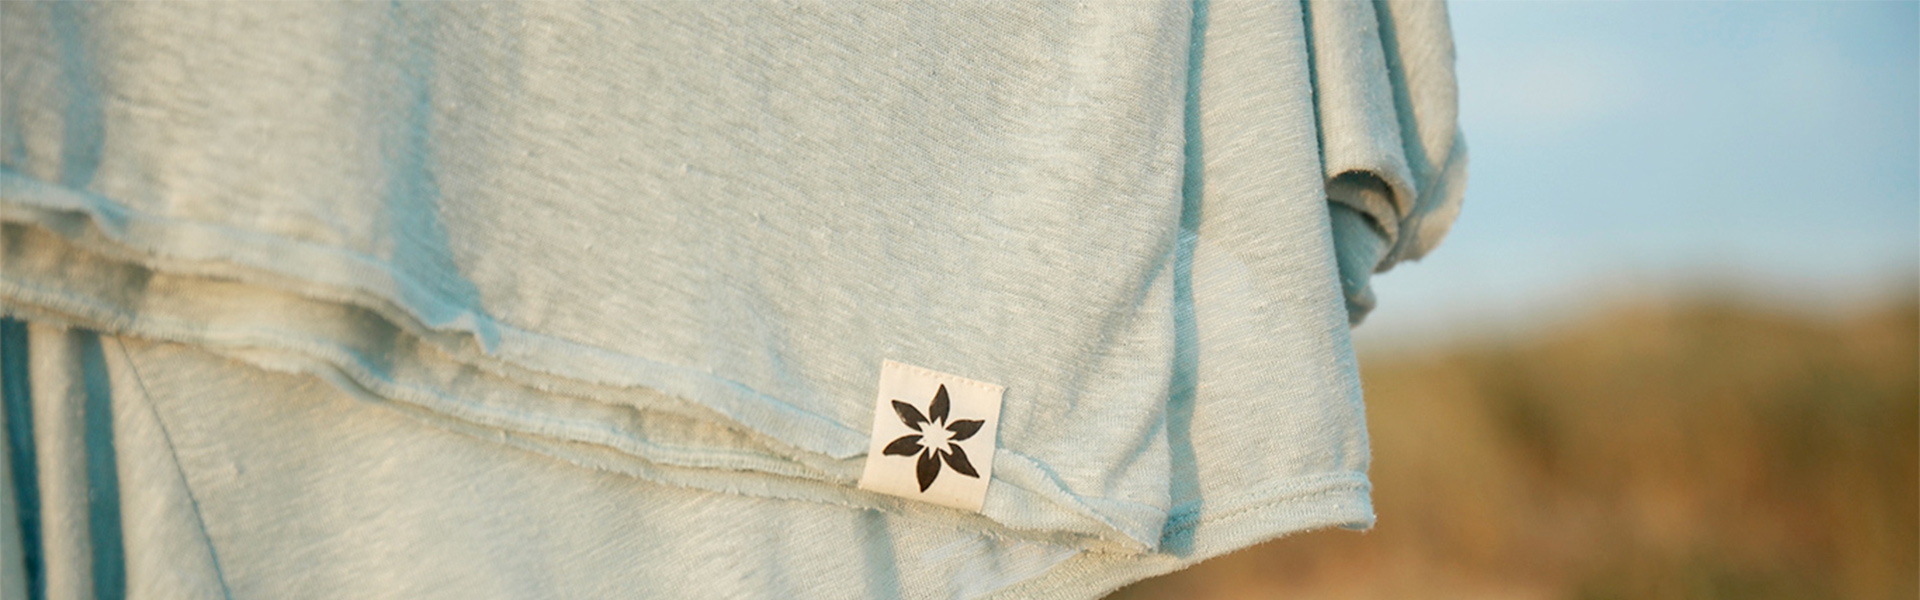 nuntisunya-pure-nature-collection-100%-tshirt-chanvre-textile-detail